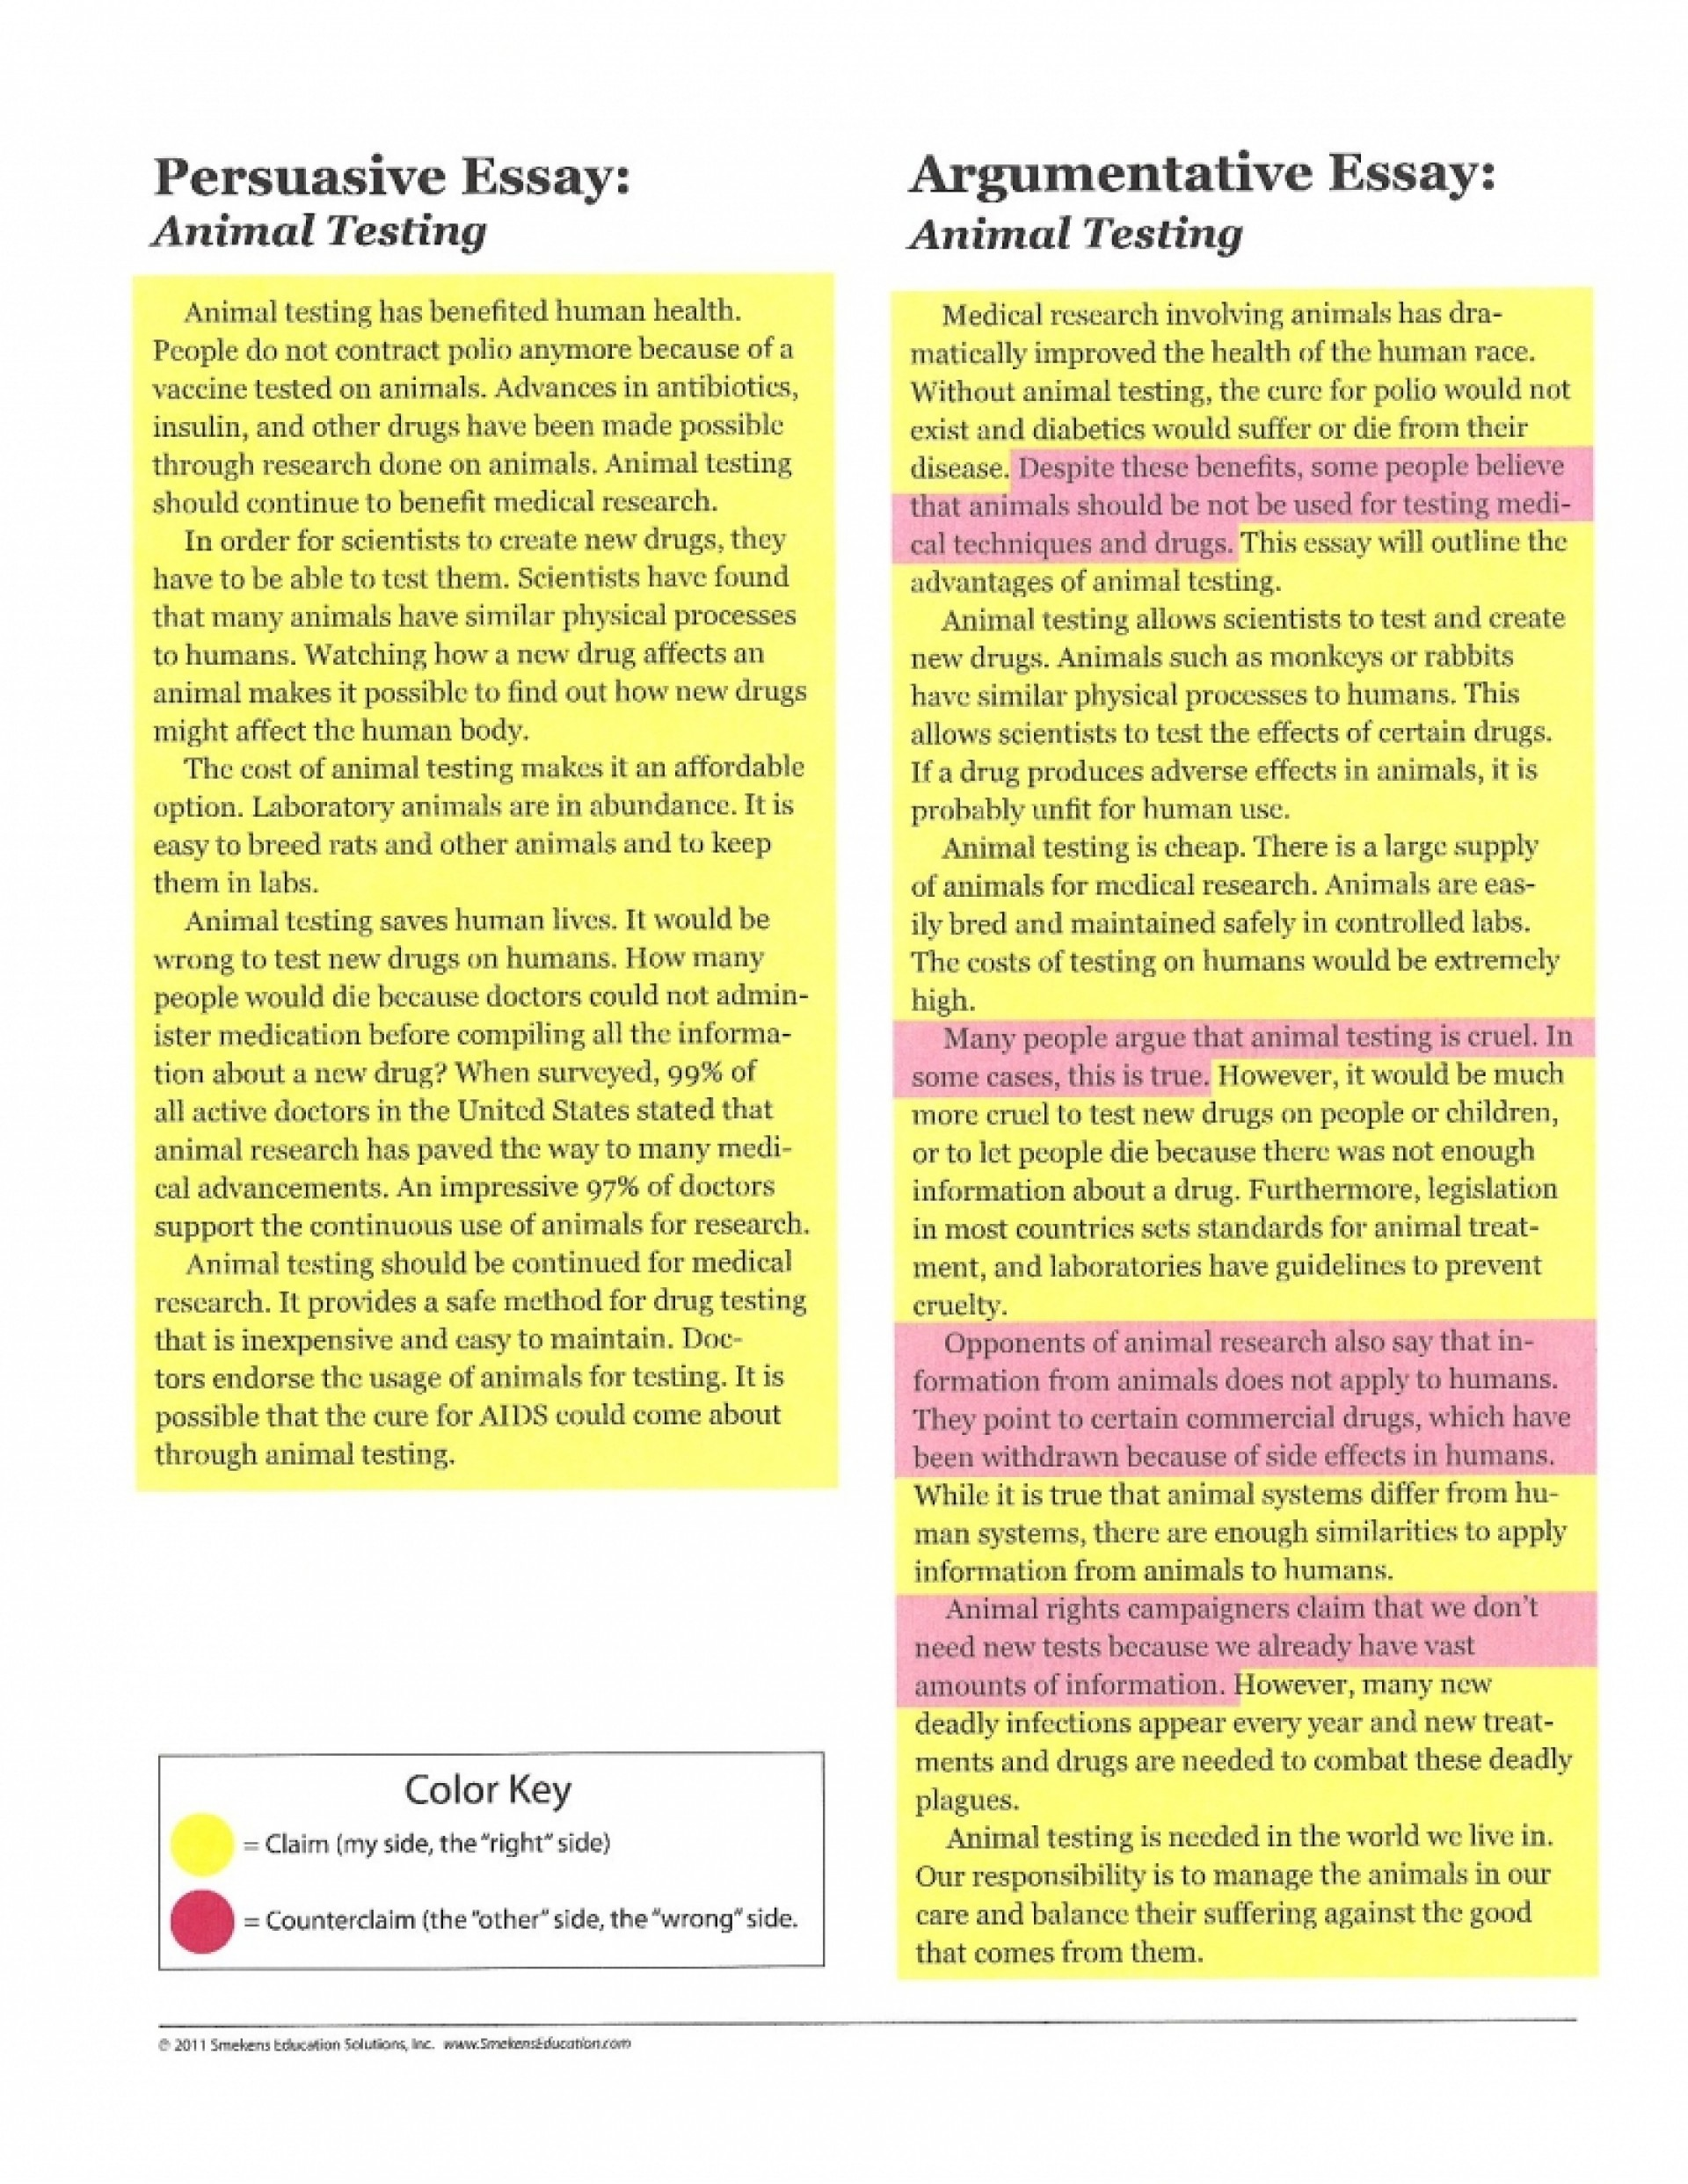 022 Pers Arg Full Essayss Of Argumentative Essay Dreaded Examples Essays For Middle Schoolers Example Topics College Students 1920